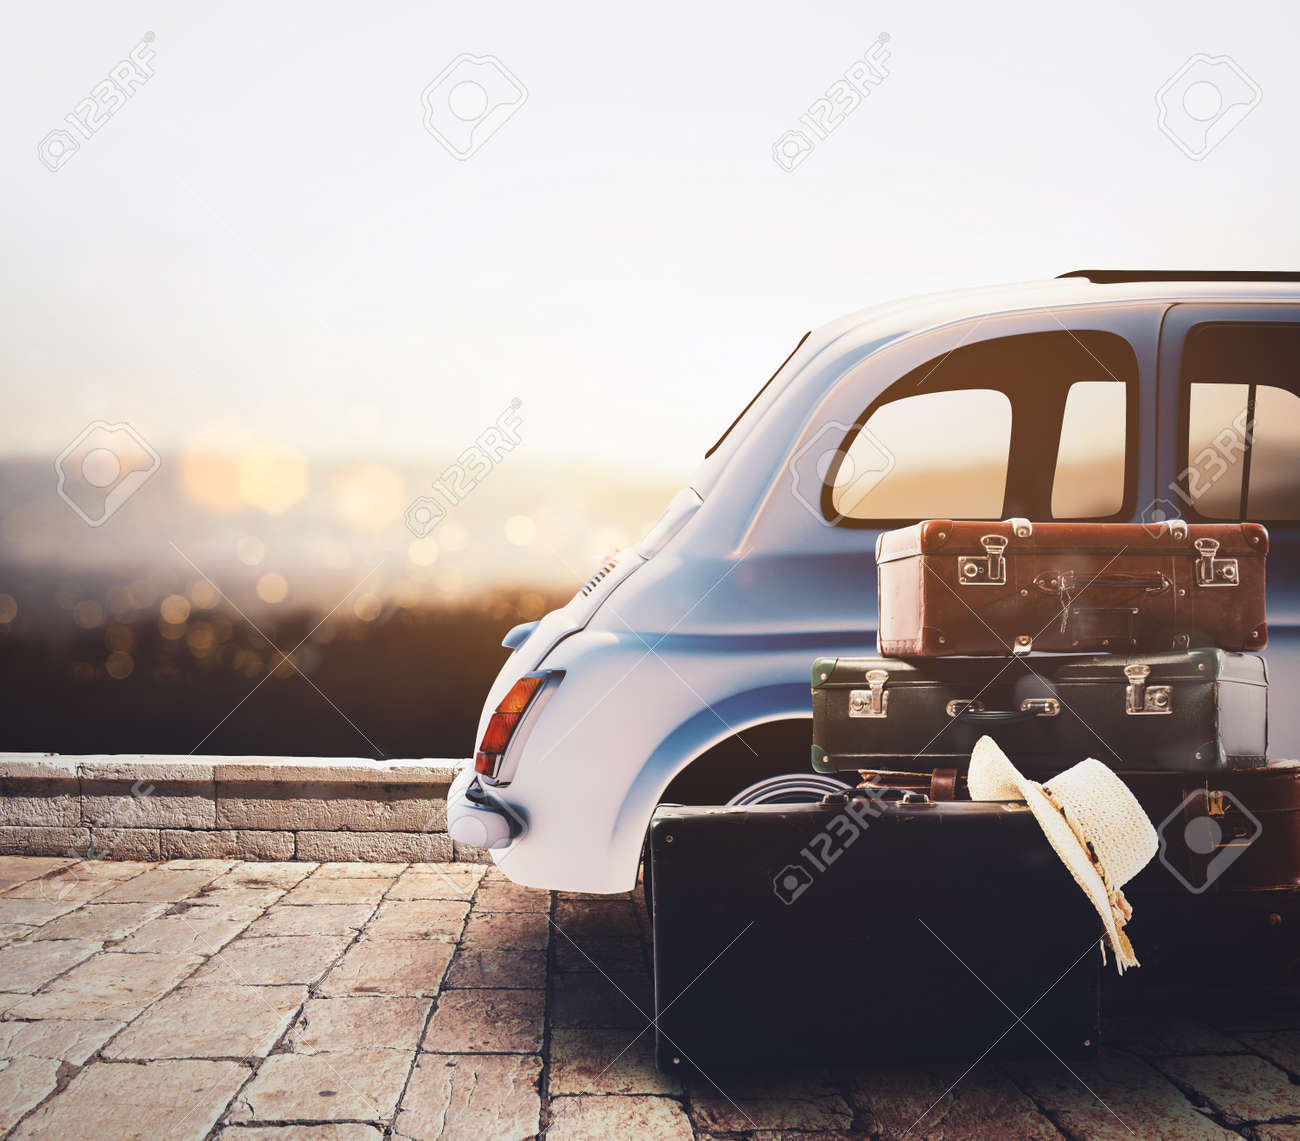 Car on the road ready for summer holiday during sunset with luggage - 107732721